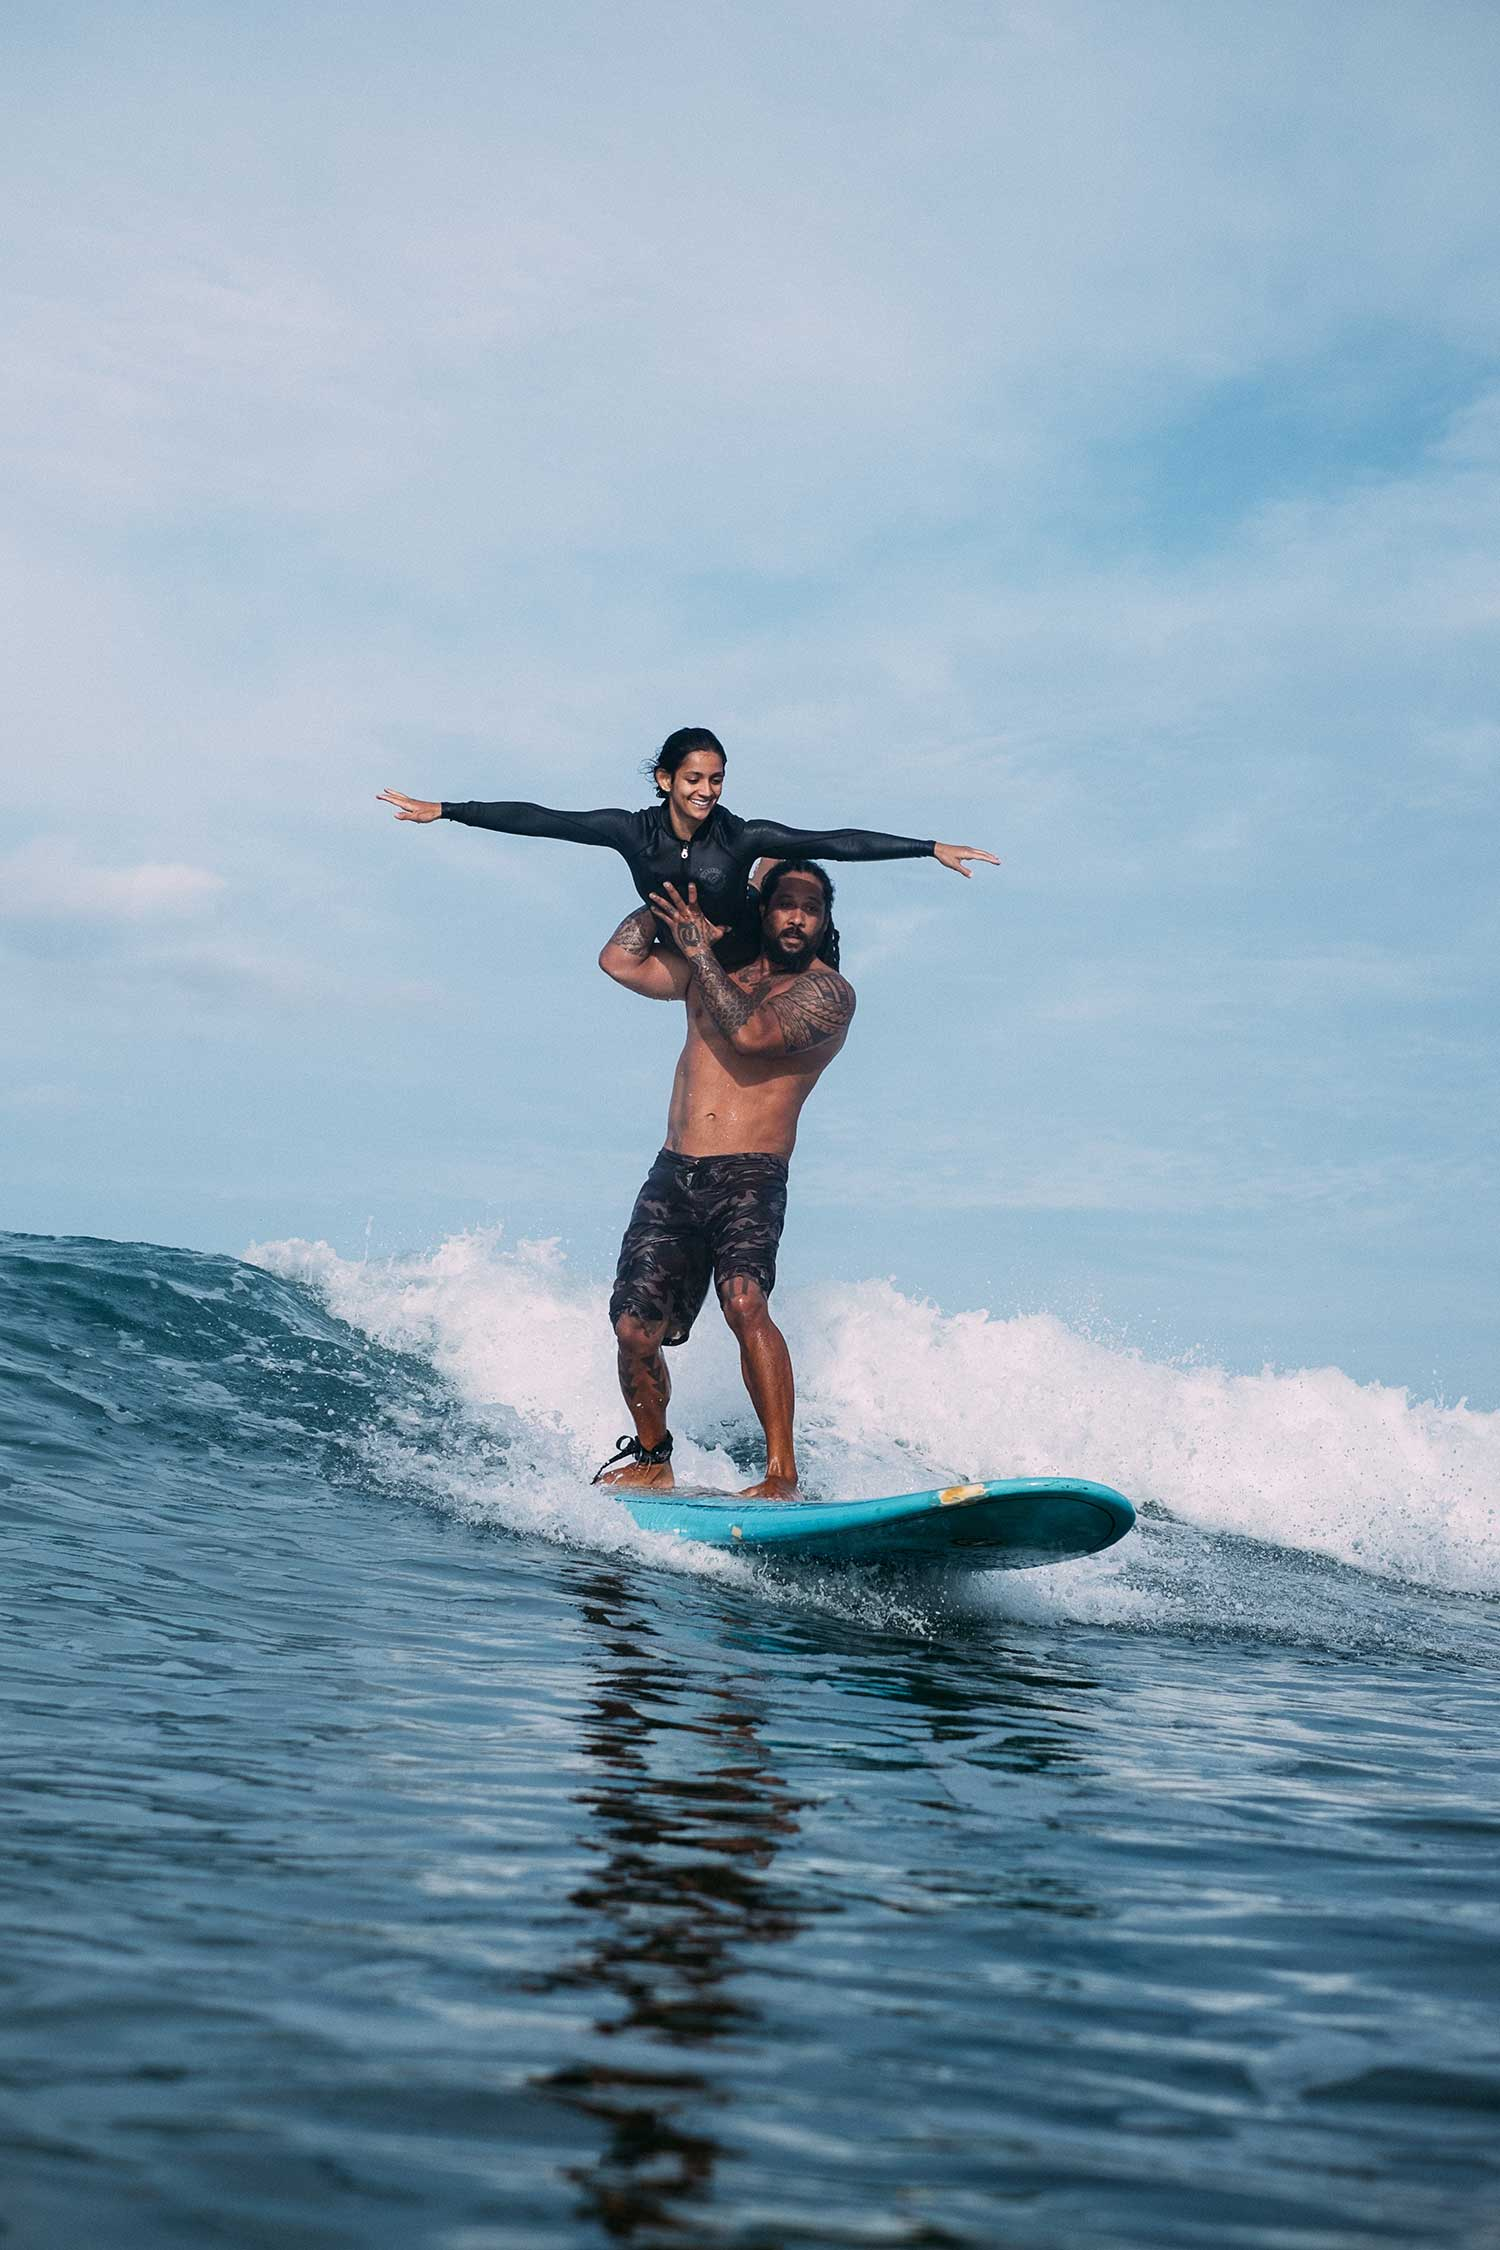 Tandem surfers doing tricks while catching waves